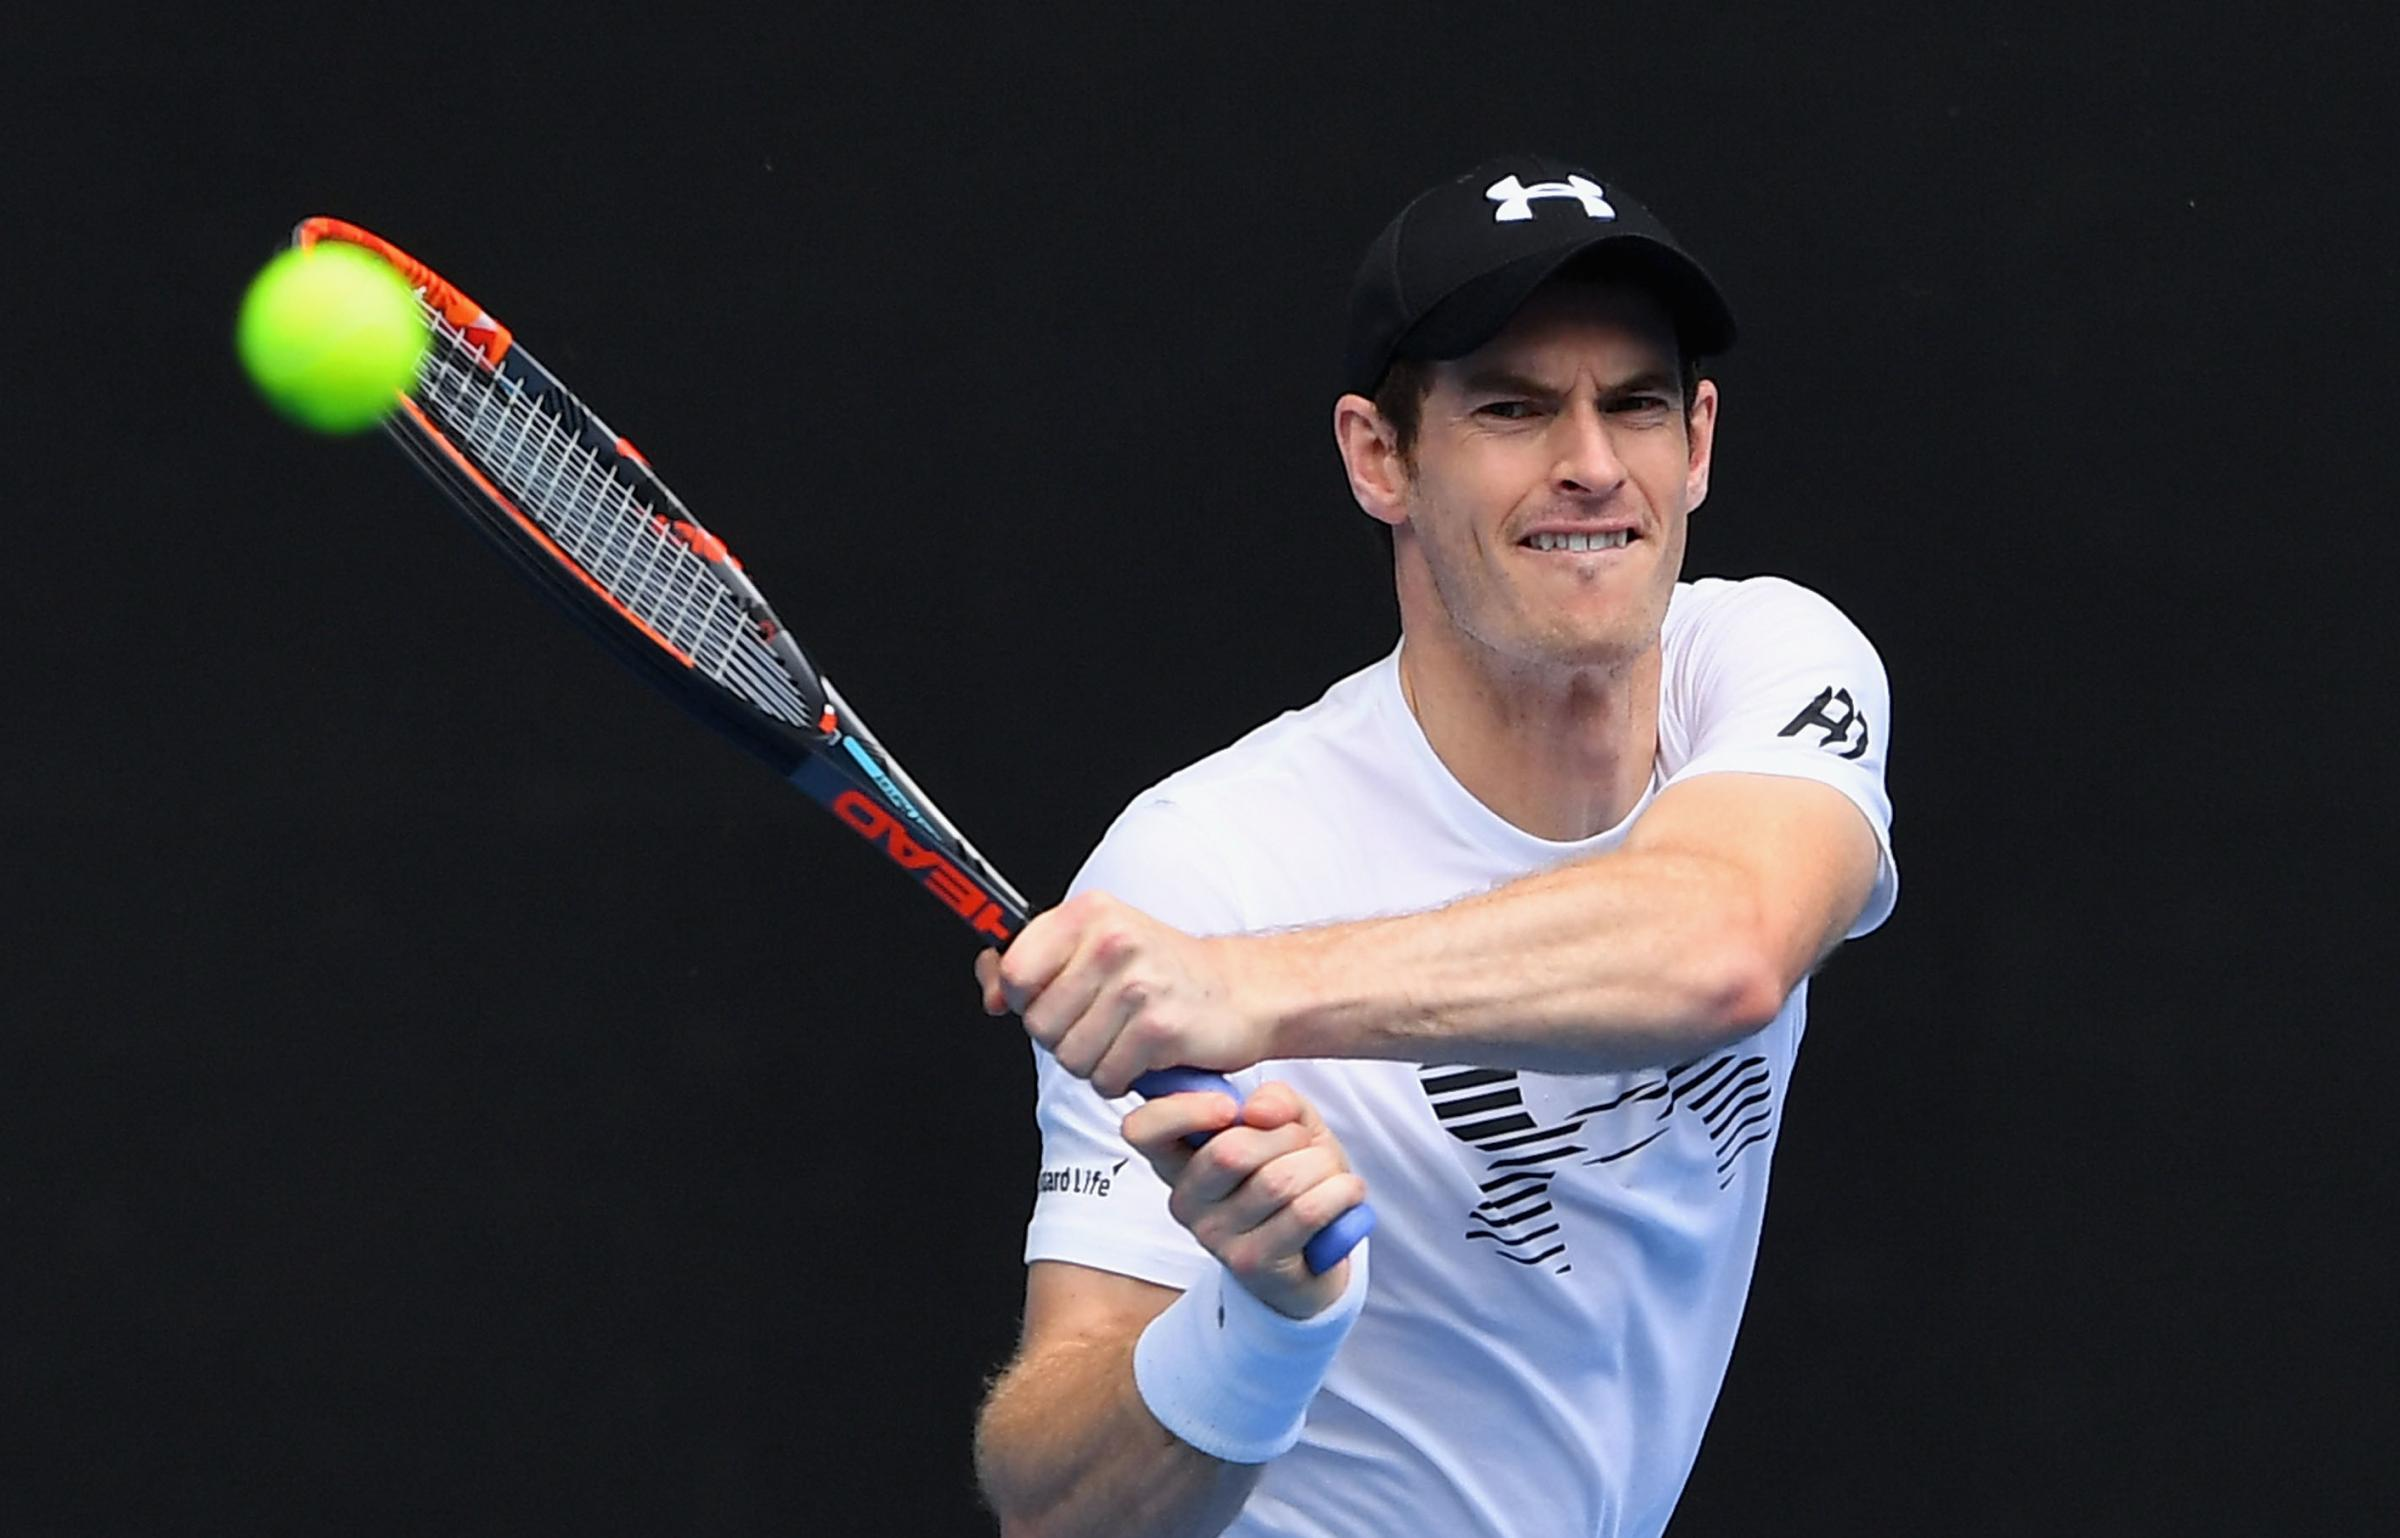 Andy Murray had hip surfacing surgery at the end of January